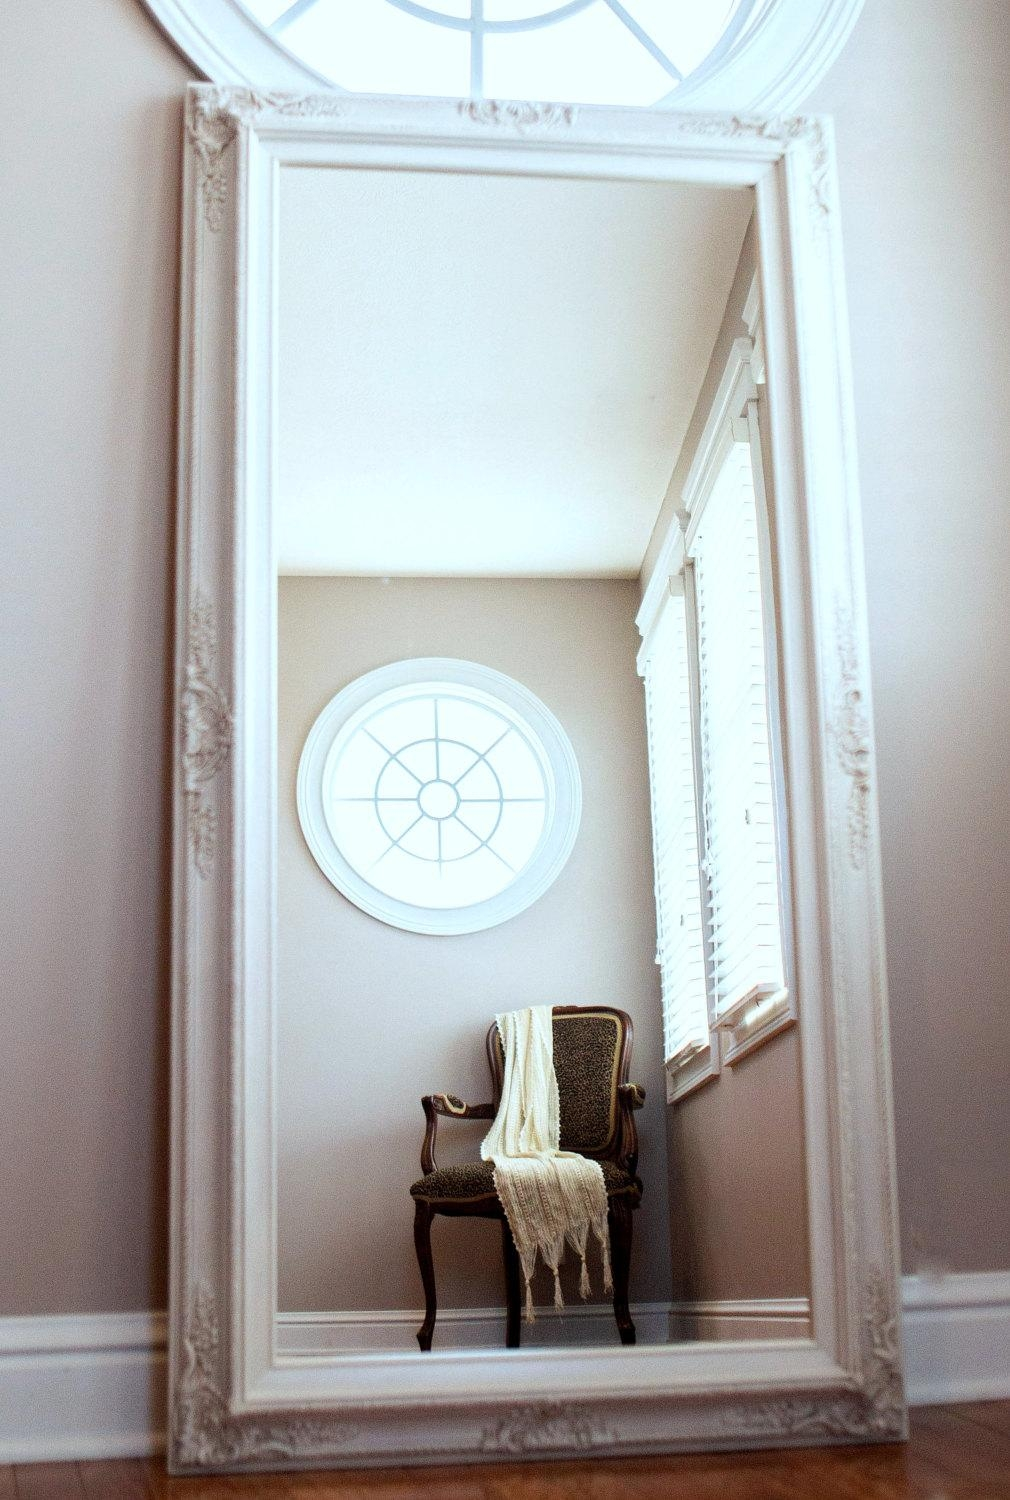 Flooring : Literarywondrous White Floorrror Image Inspirations With Regard To Distressed Framed Mirror (View 15 of 20)